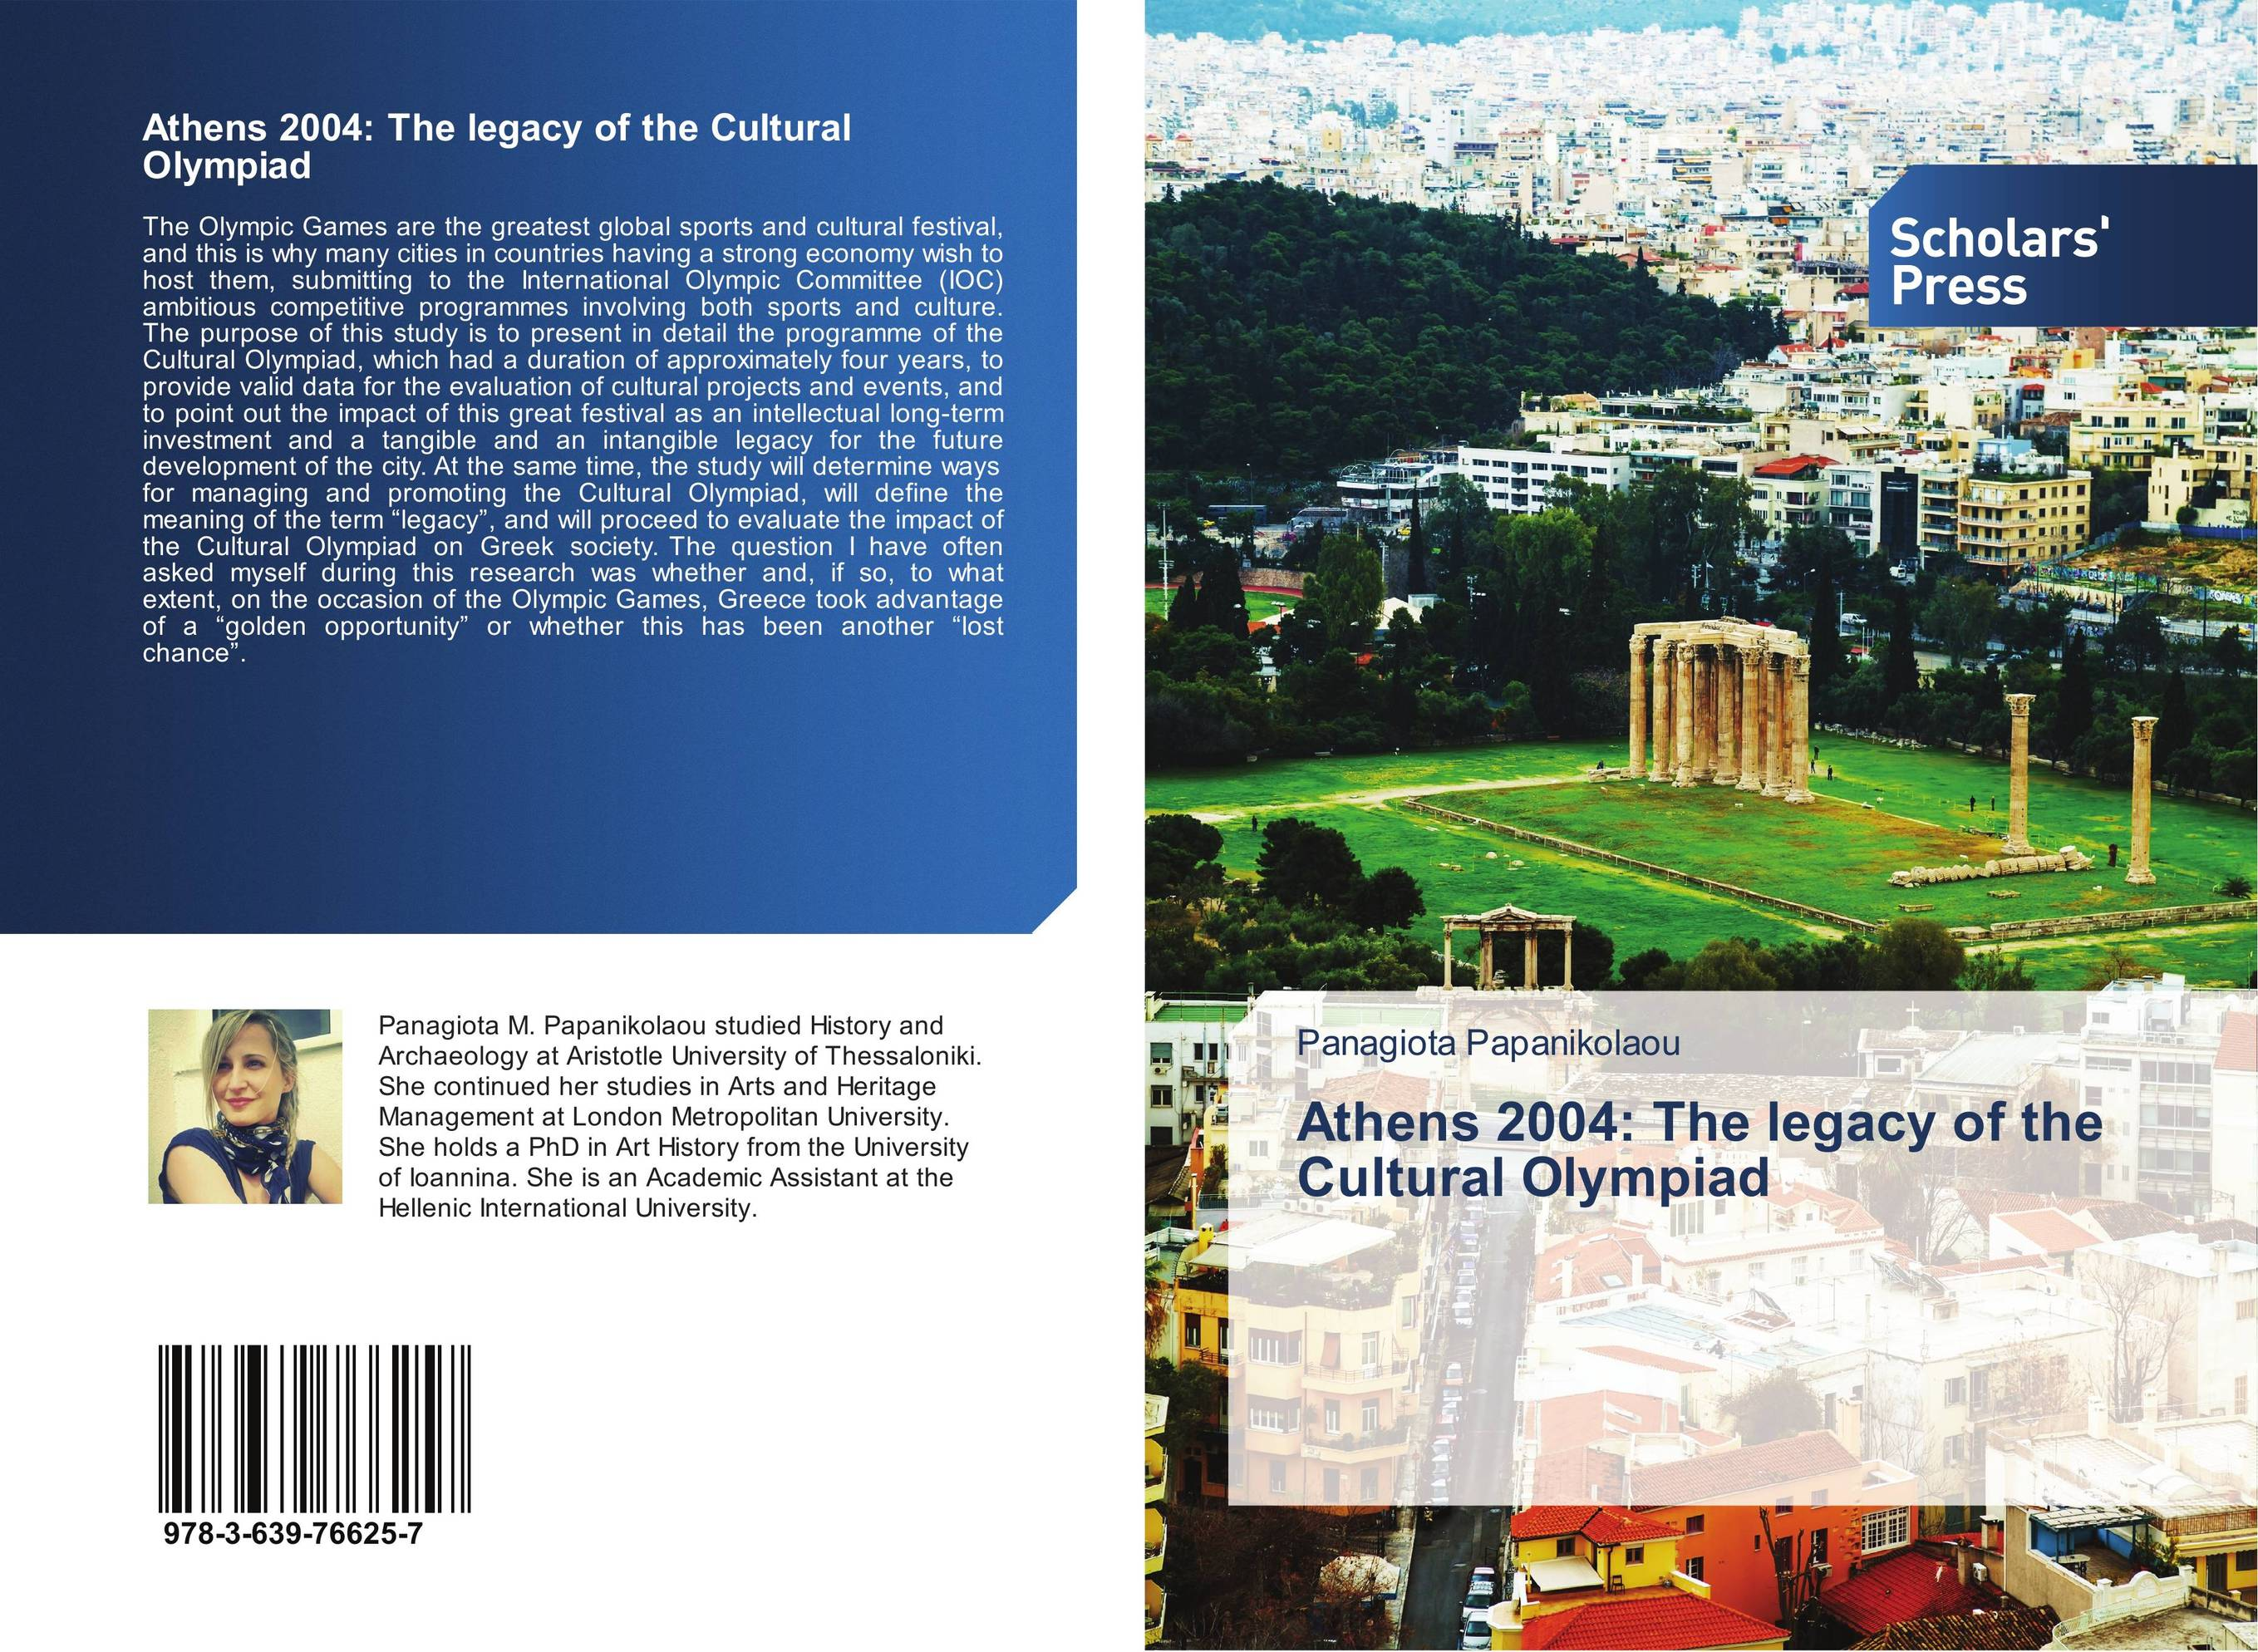 Athens 2004: The legacy of the Cultural Olympiad managing the store